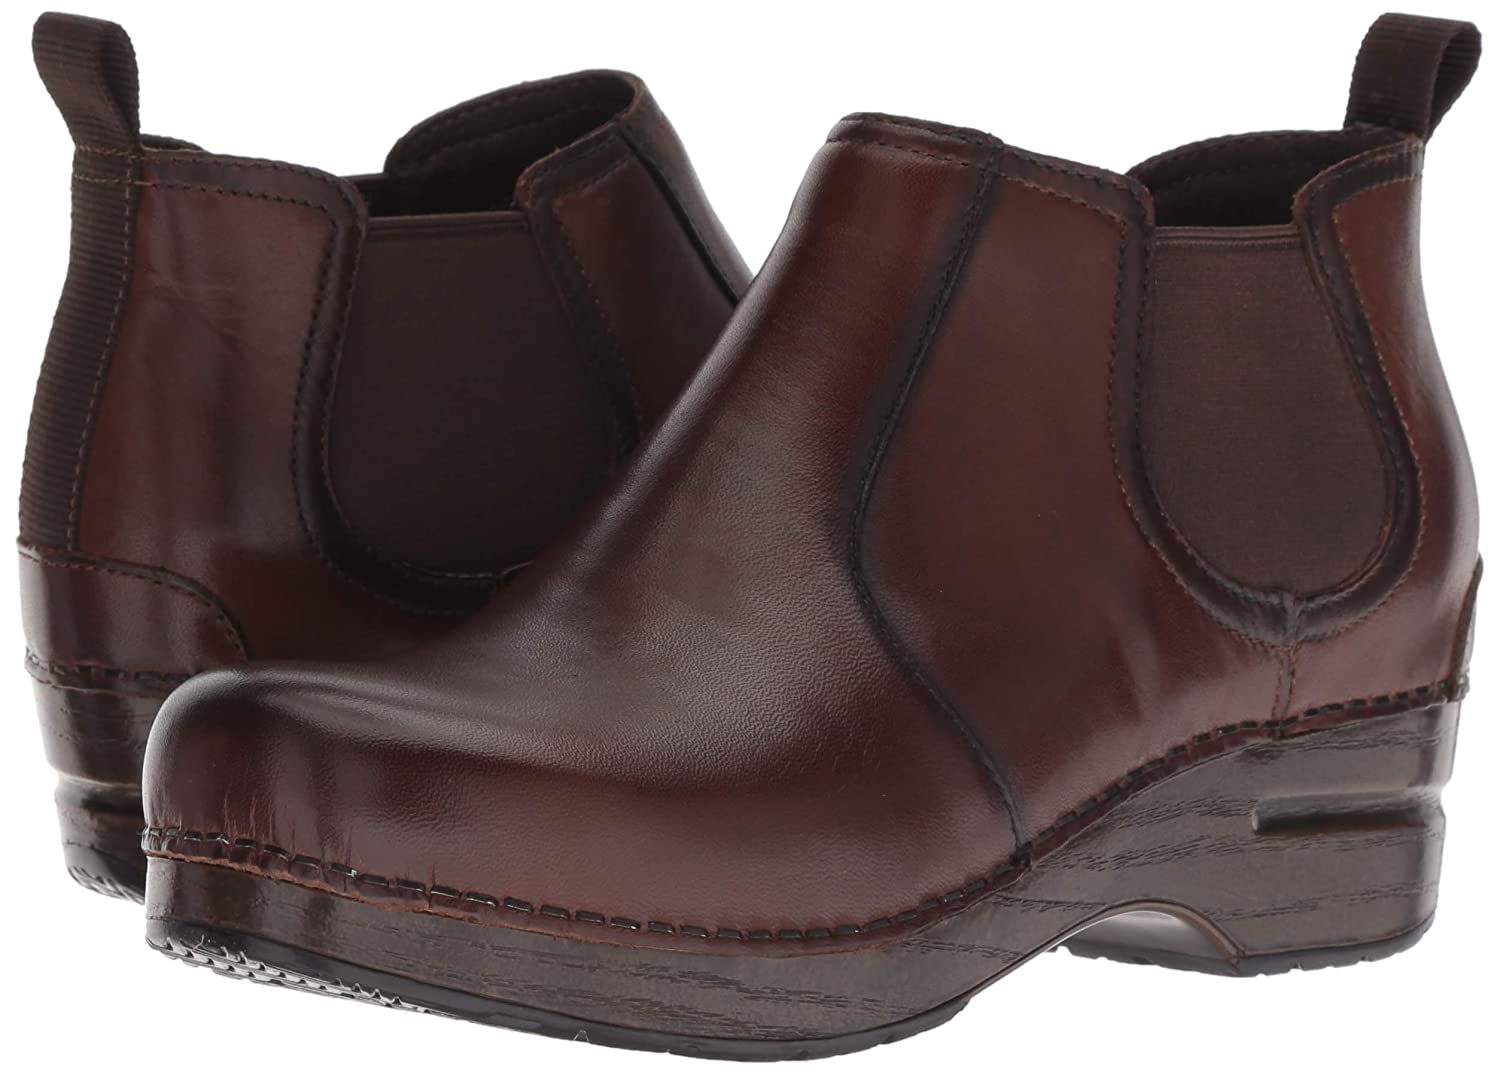 Amazon.com: Dansko - Botas de tobillo para mujer: Shoes